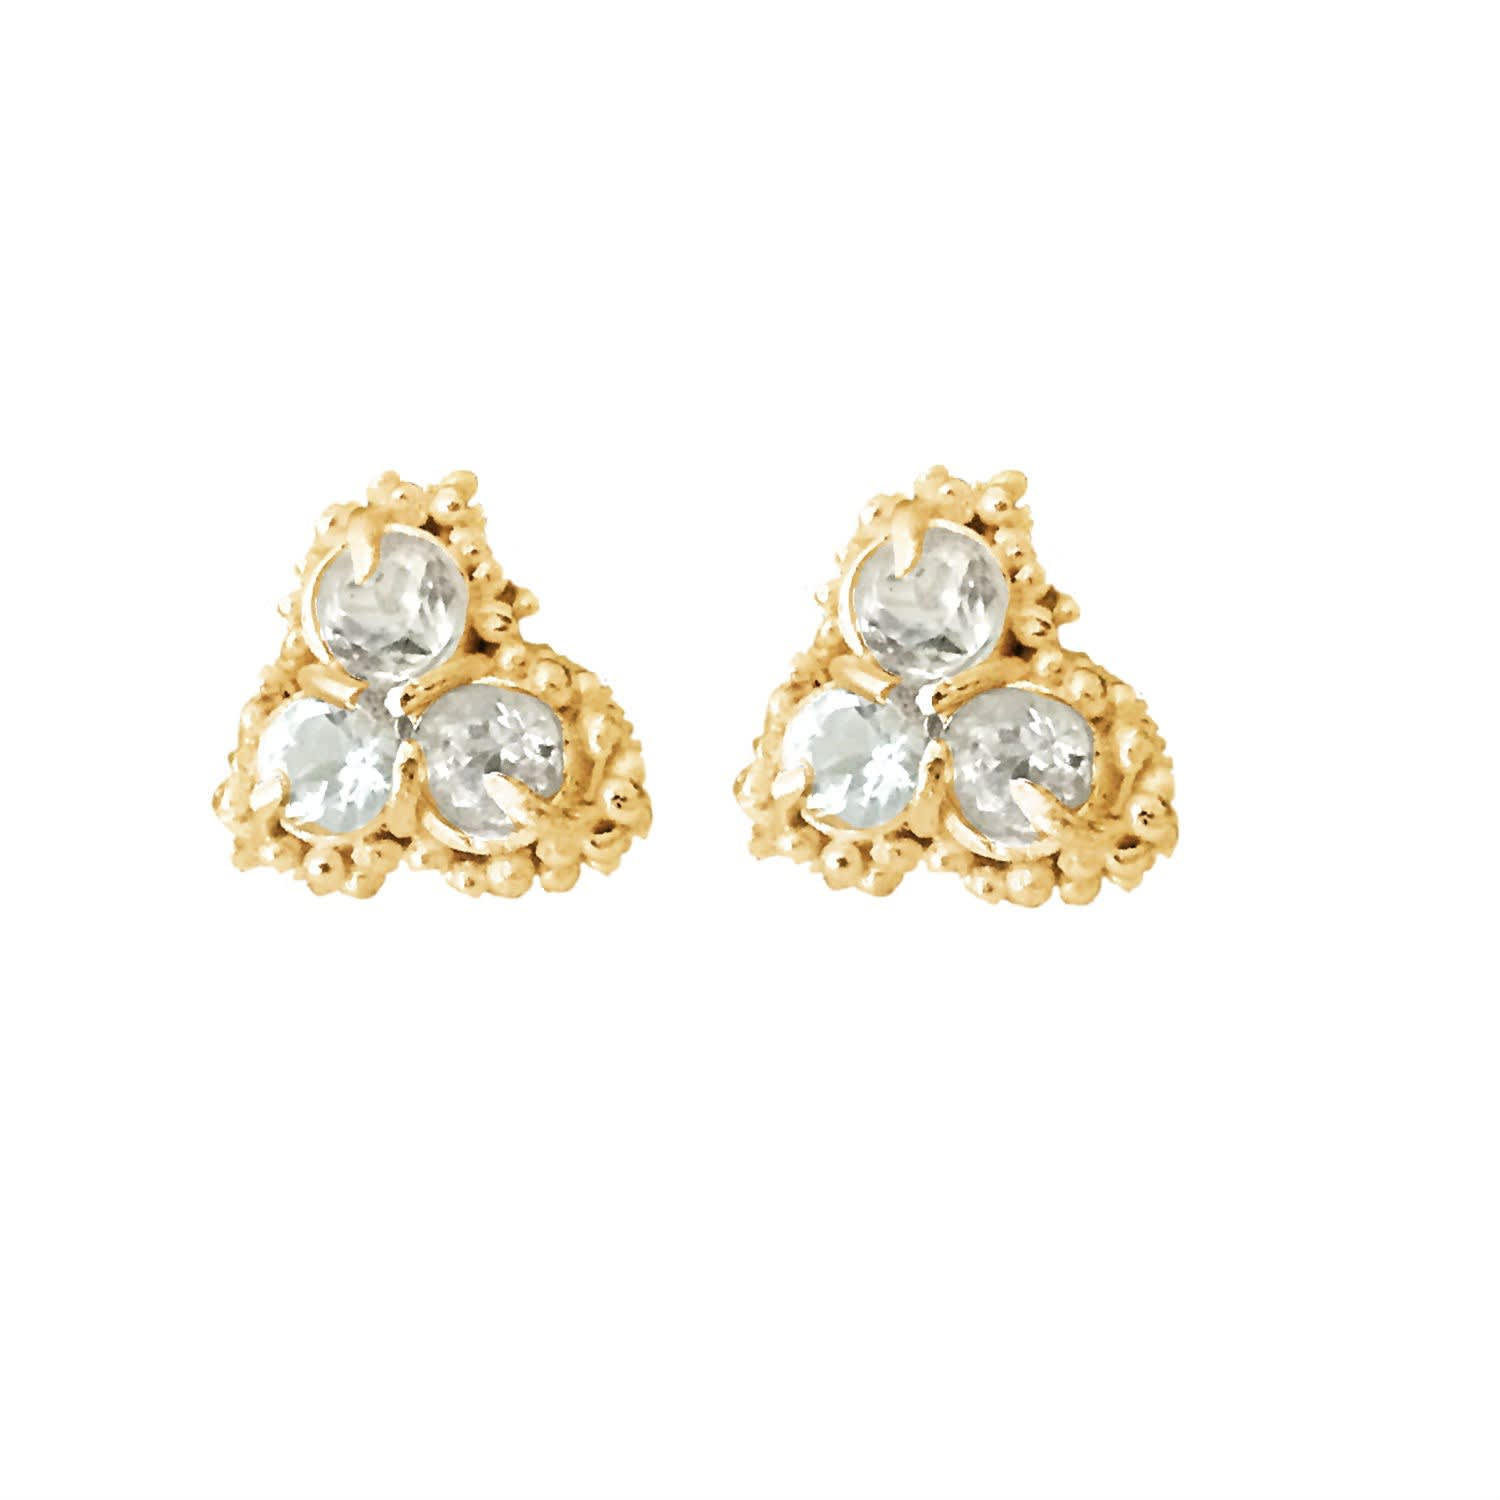 ab3965460 Kaia Cluster Stud Earrings With White Sapphires & Yellow Gold | Lily ...